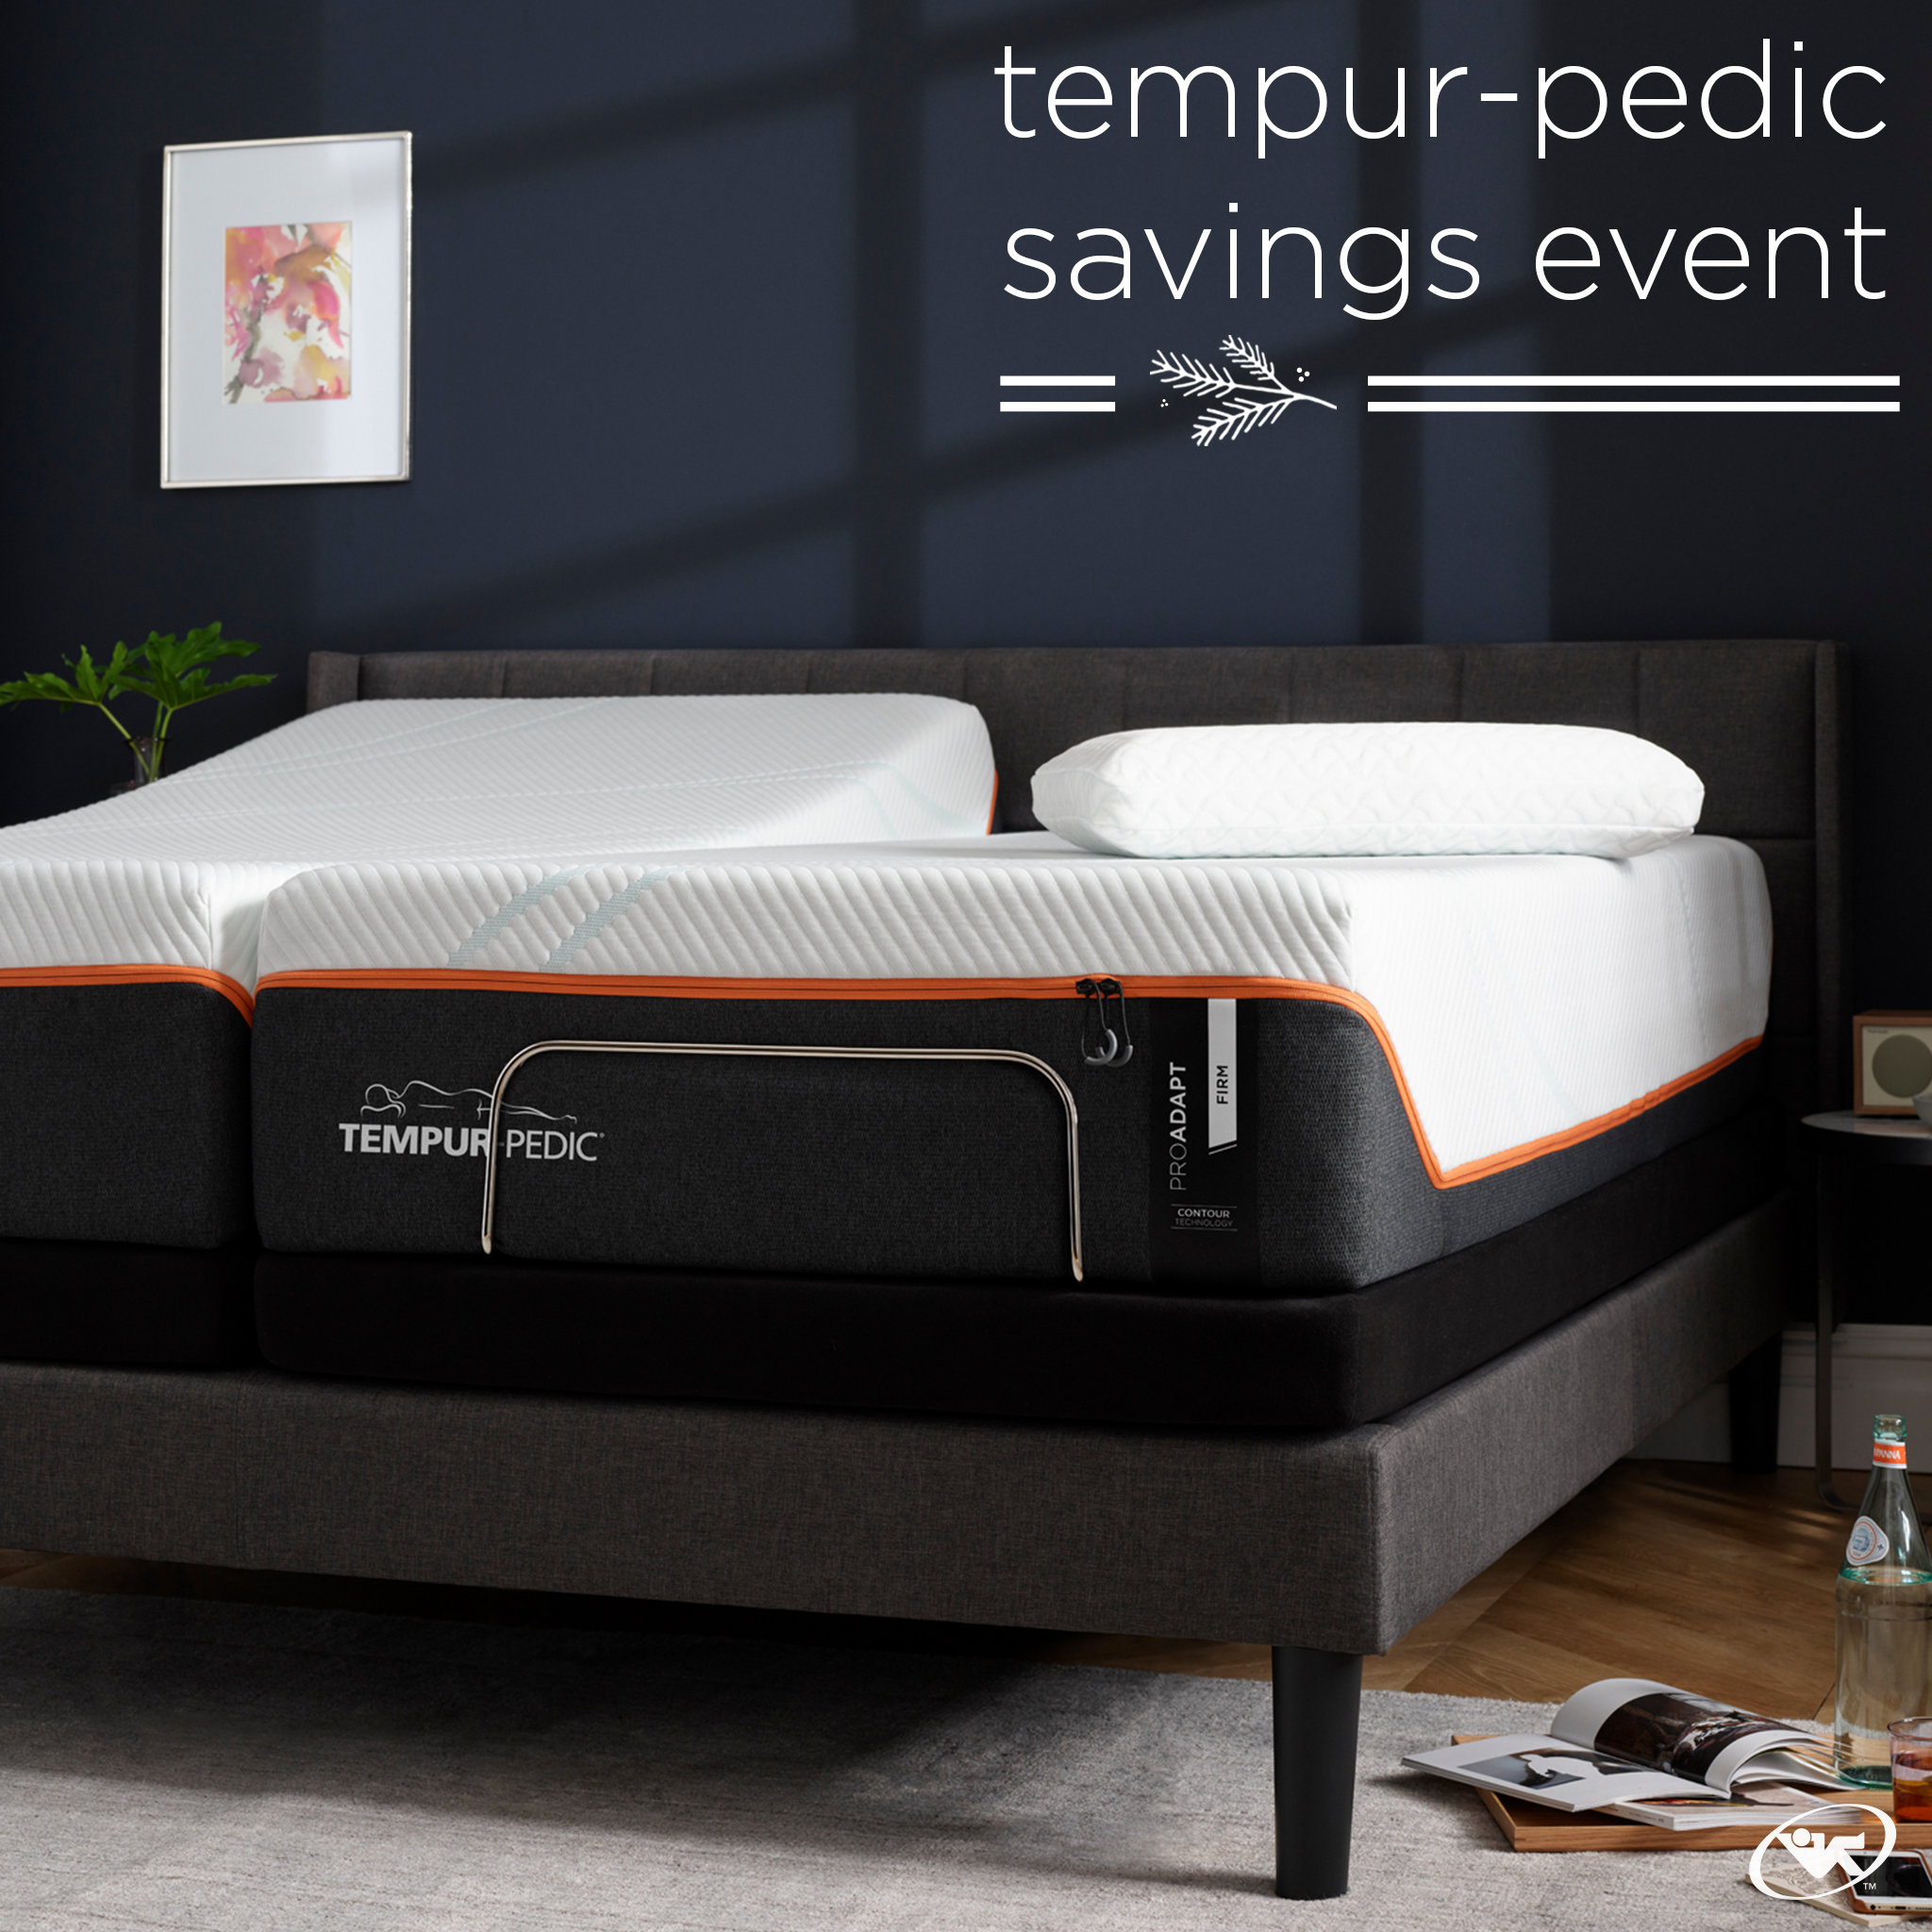 It S Time For Our Tempurpedic Savings Event Save Up To 500 On Select Adjustable Mattress Sets Al Tempurpedic Bed Tempurpedic Mattress King Size Bed Designs